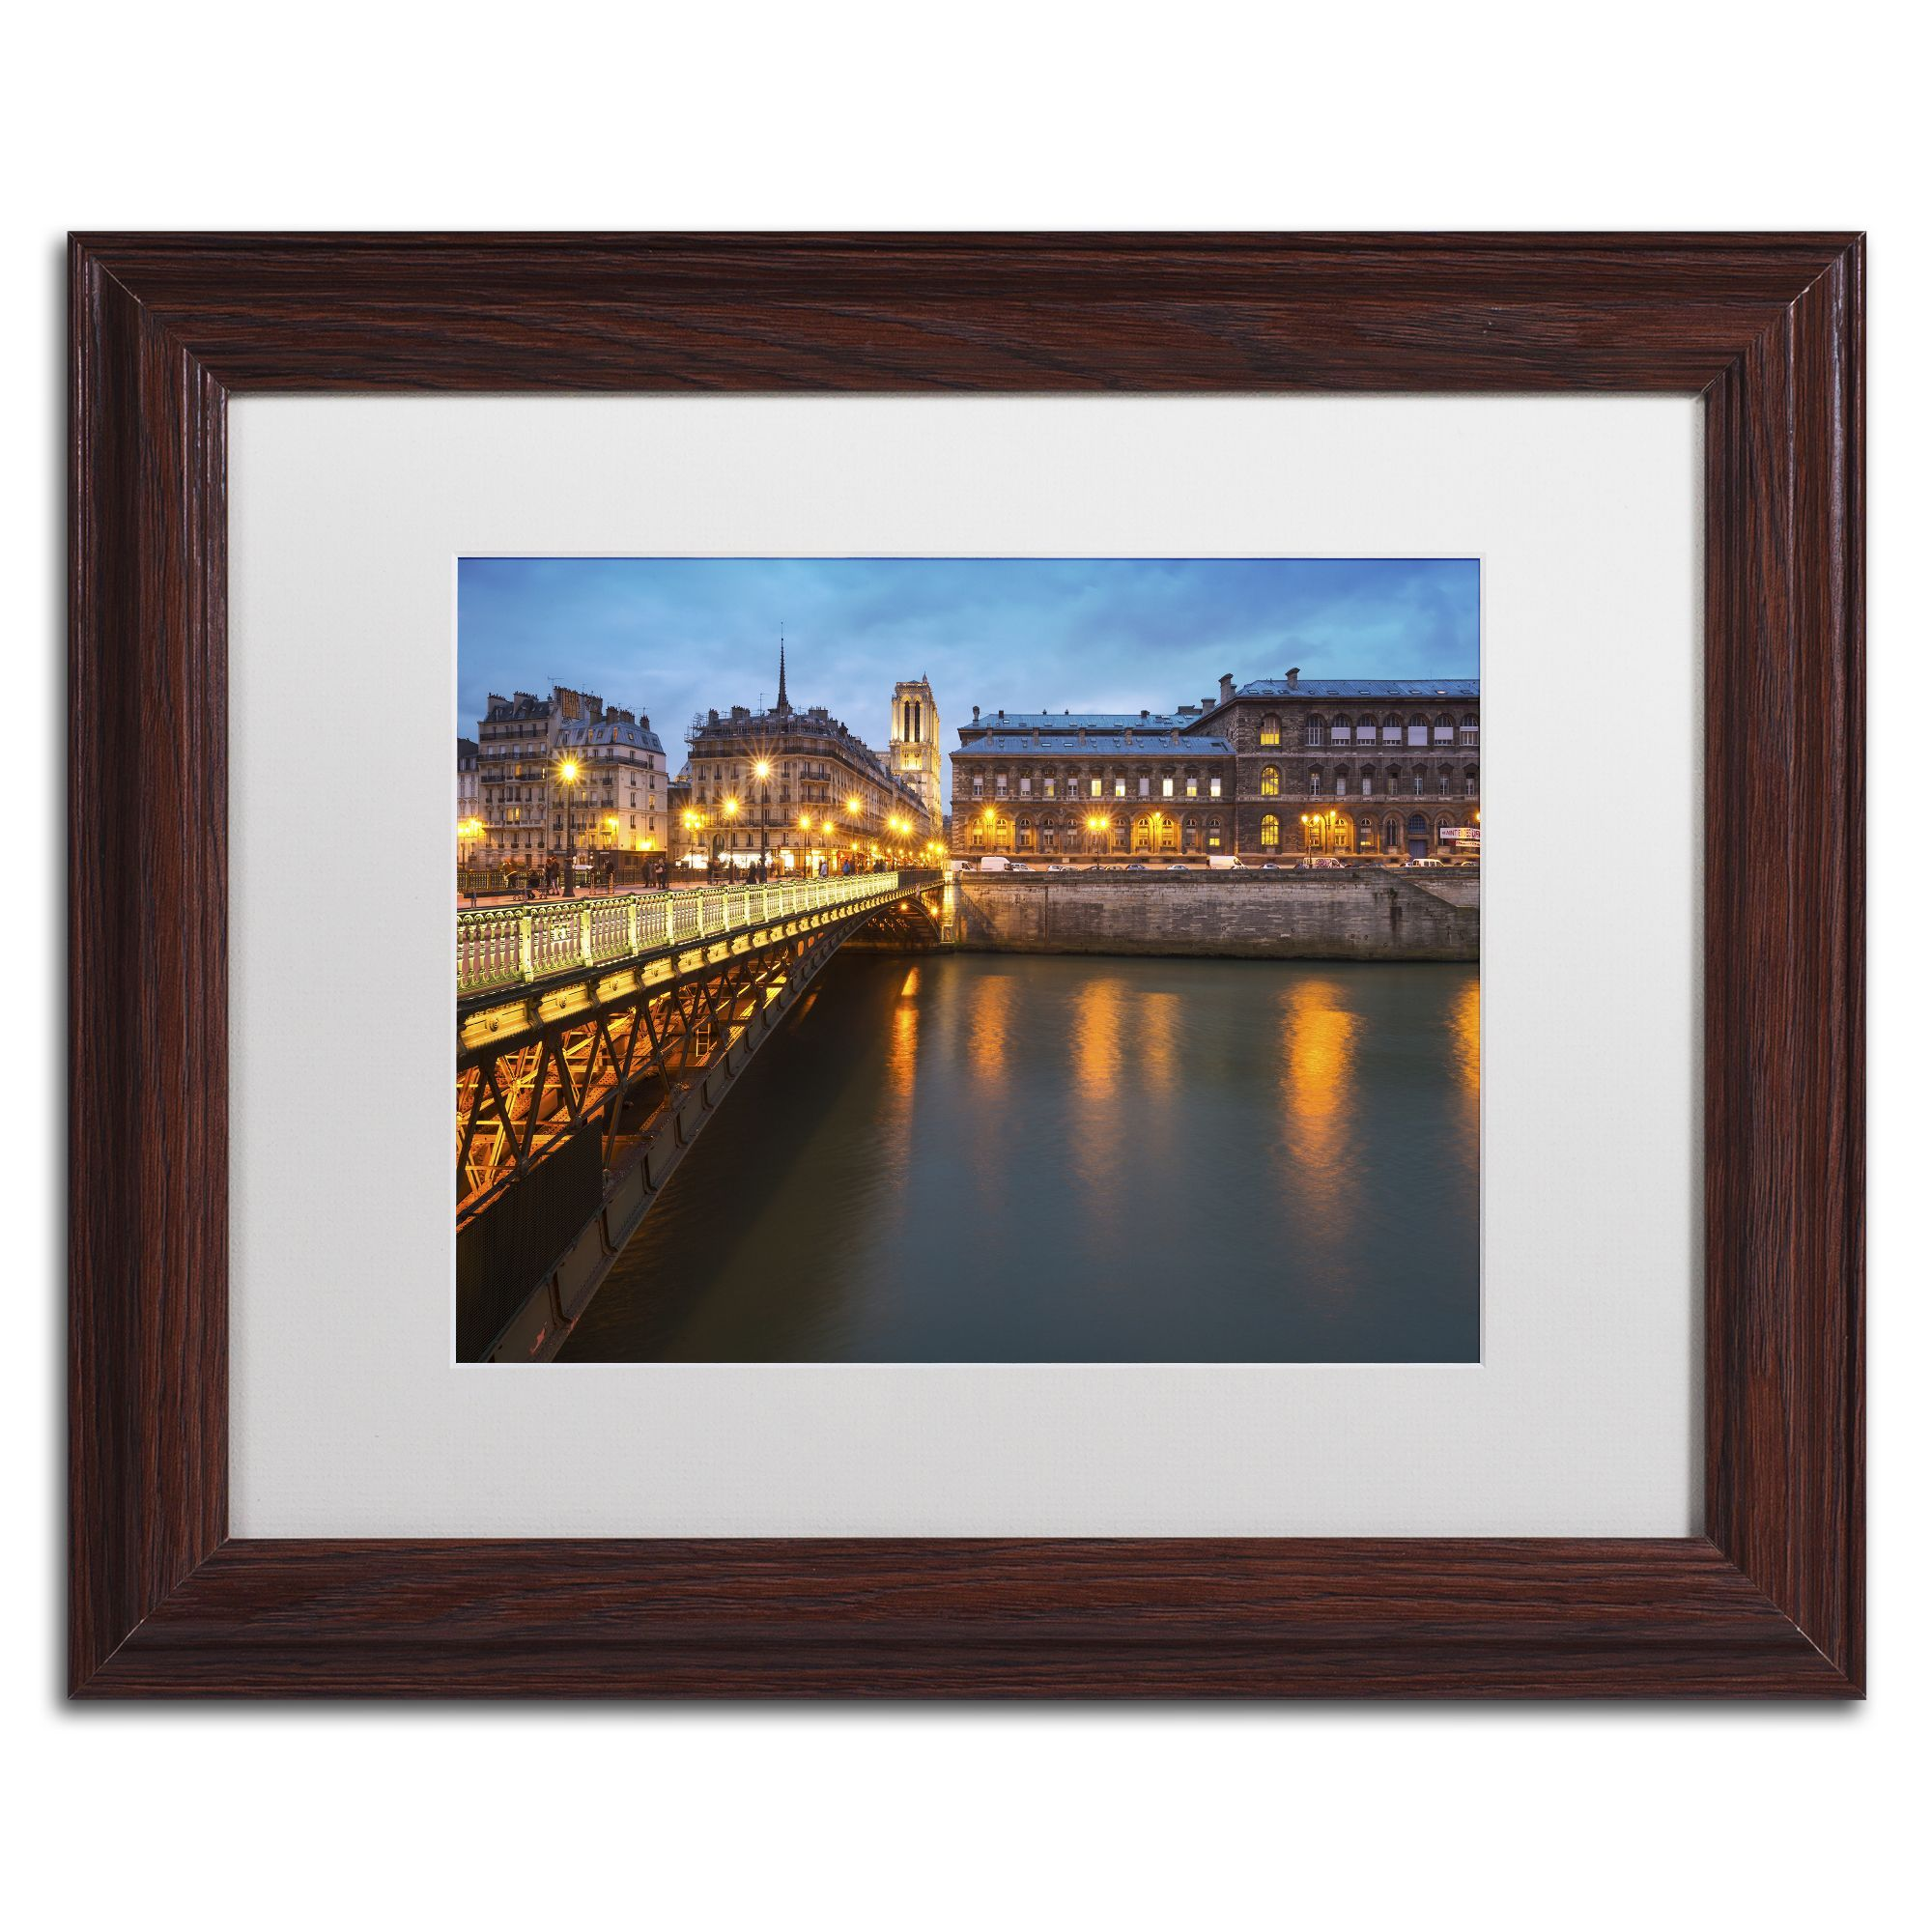 Mathieu Rivrin 'Bridge of Arcole in Paris 2' Matted Framed Art